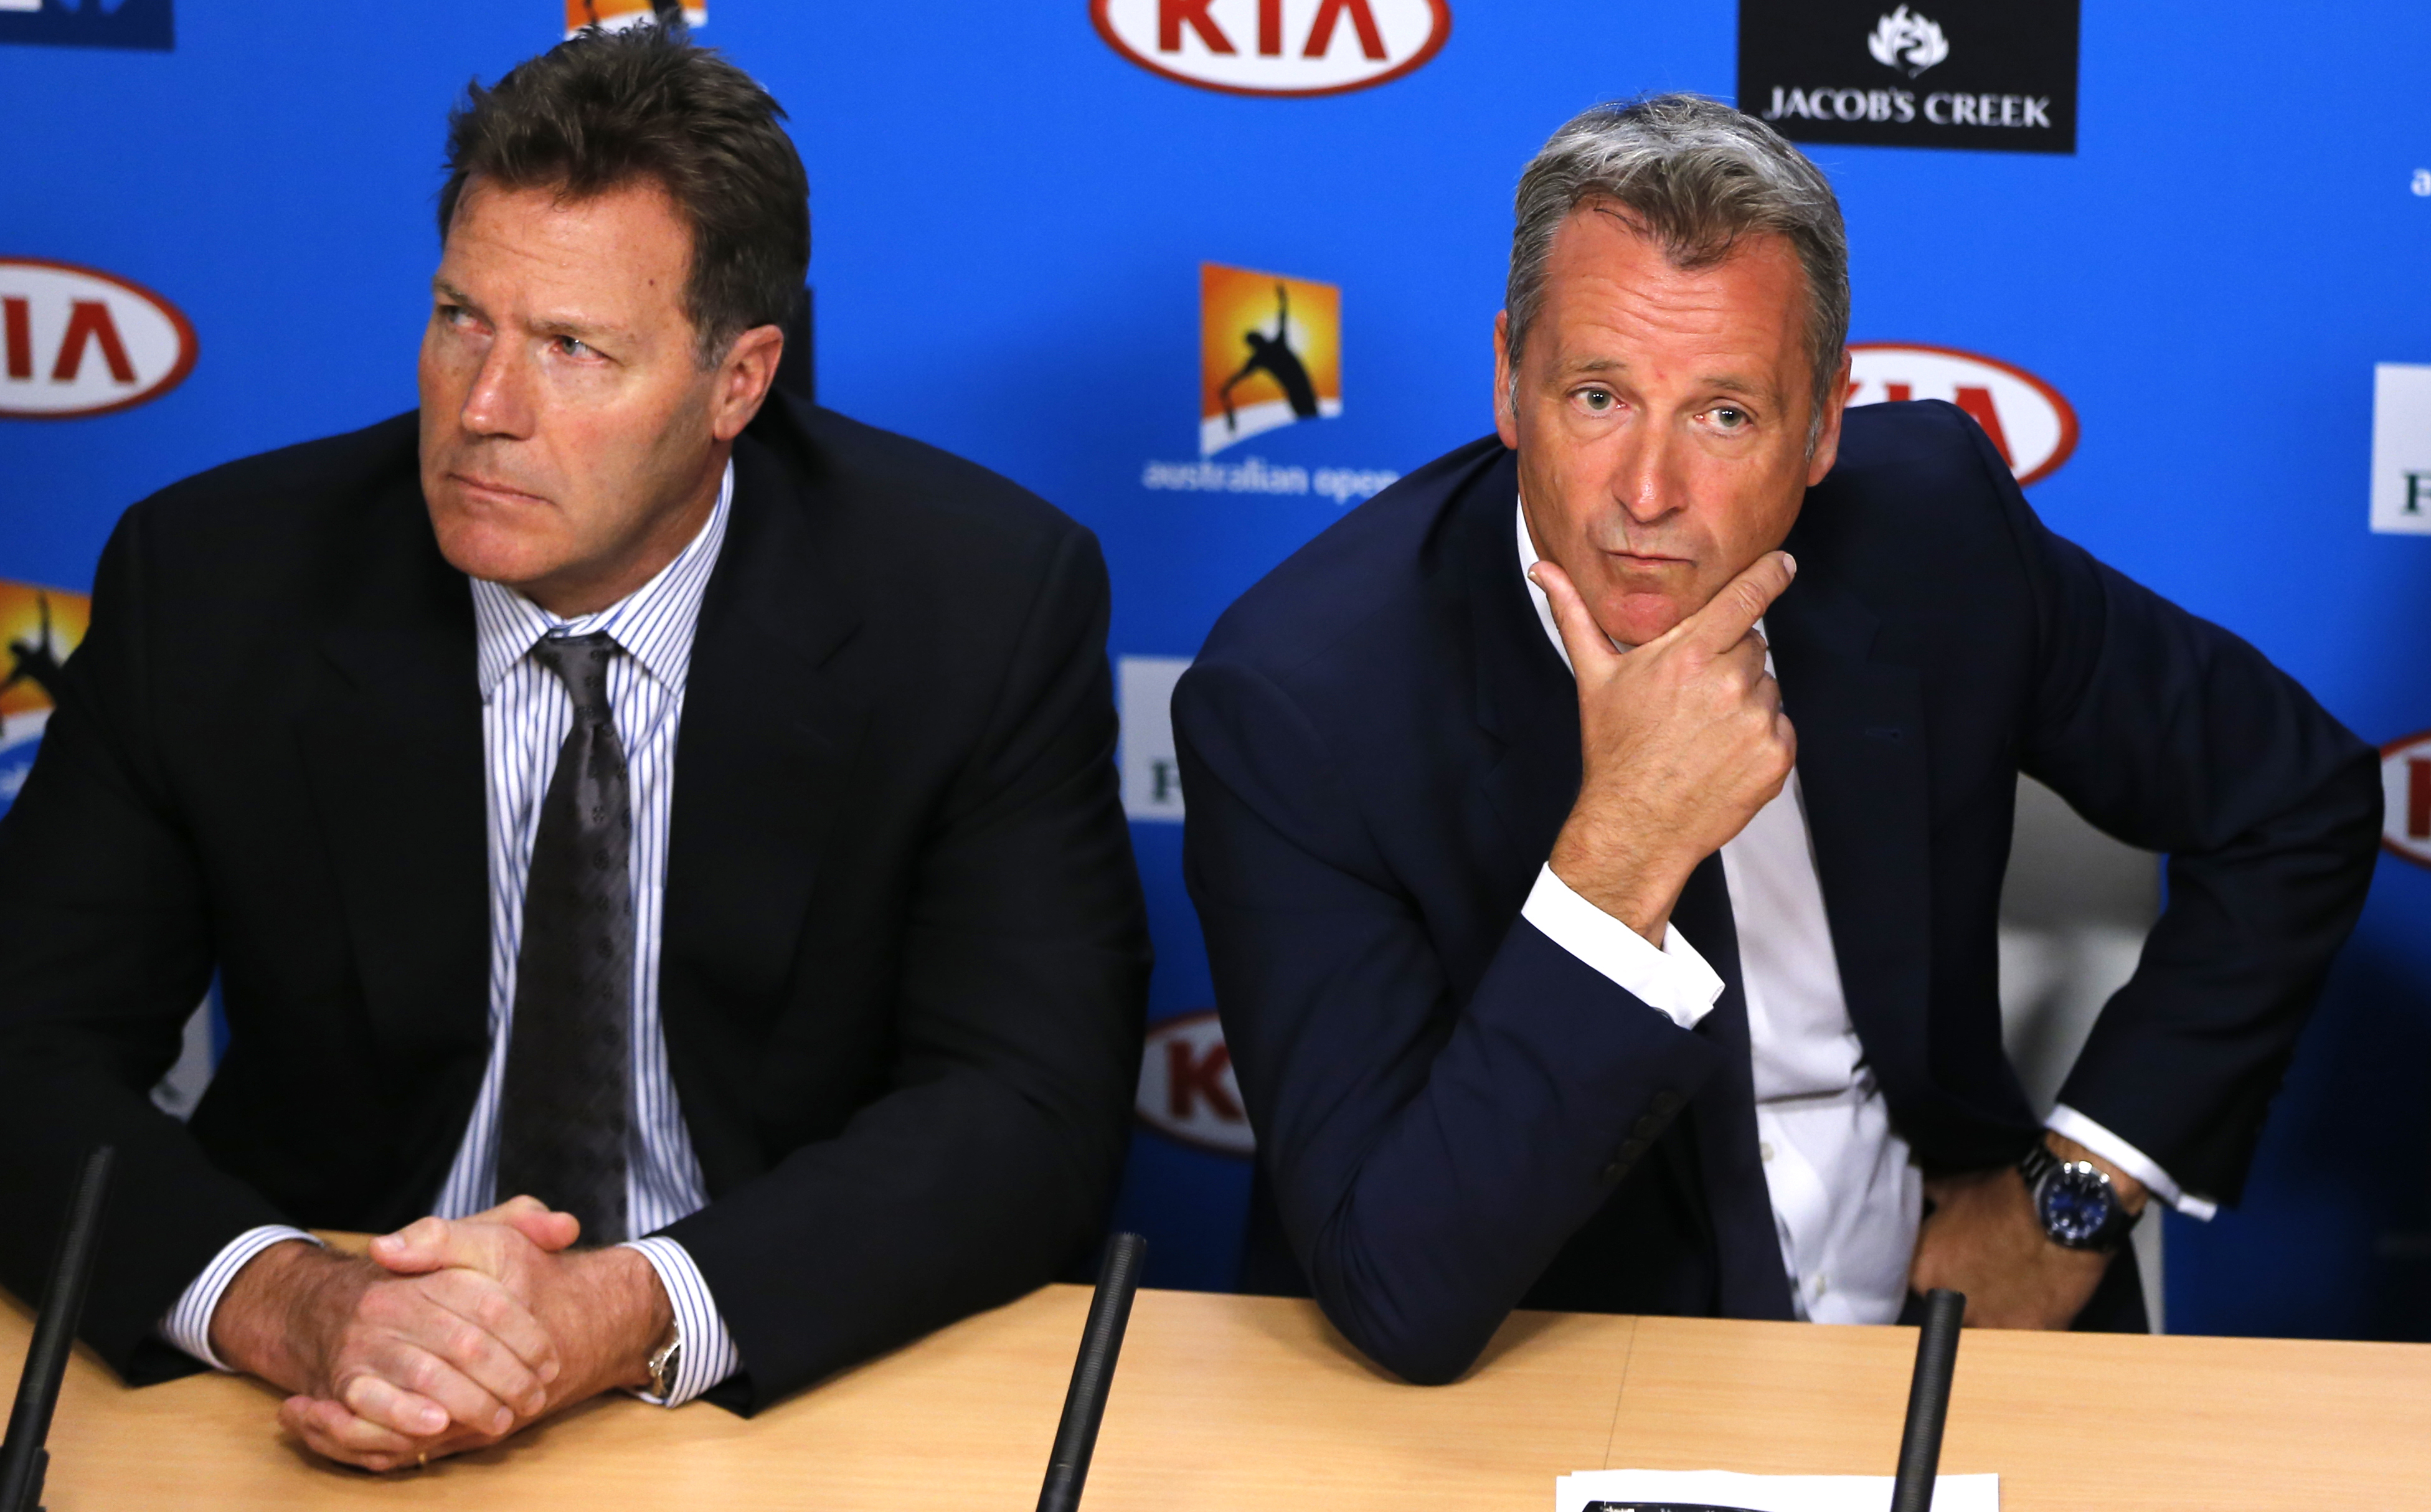 ATP chairman Chris Kermode, right,  and vice chairman Mark Young listen to reporter's question during a press conference at the Australian Open tennis championships in Melbourne, Australia, Monday, Jan. 18, 2016. Chairman Kermode and the Tennis Integrity